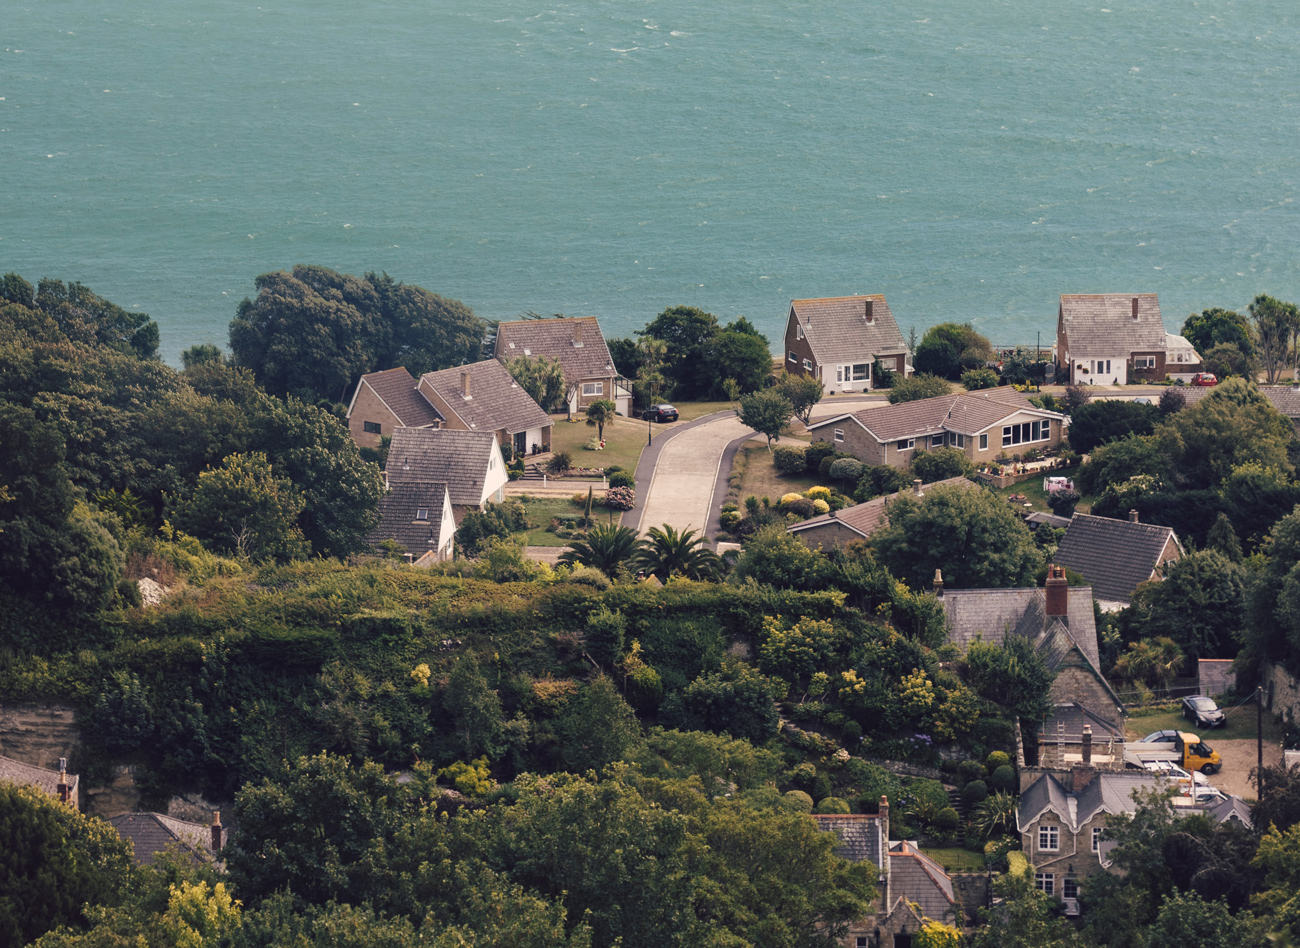 A village next to the sea on the Ilse of Wight